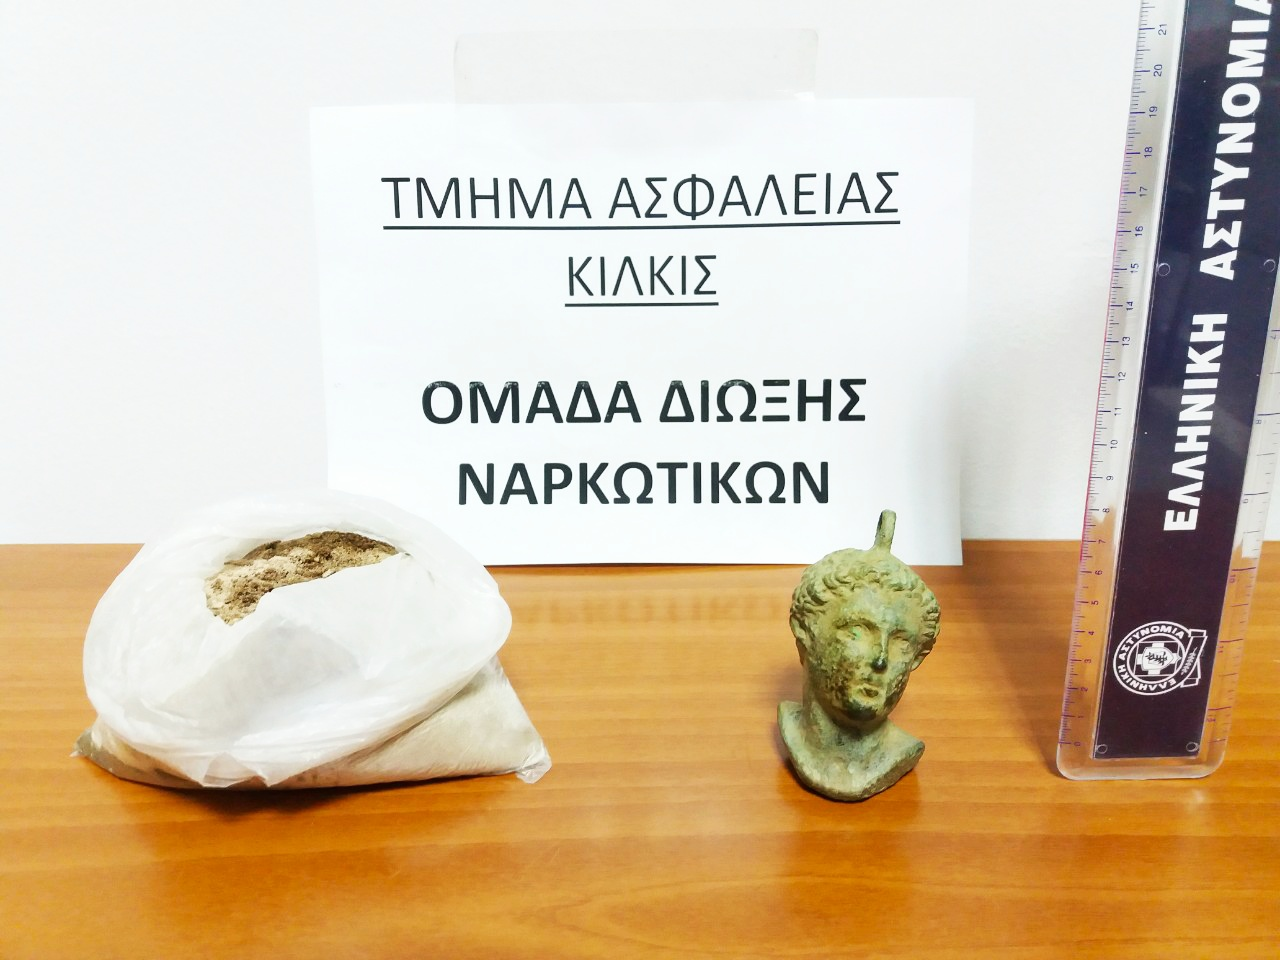 http://www.astynomia.gr/images/stories//2019/photos2019/15012019kentrikhnark1.jpg